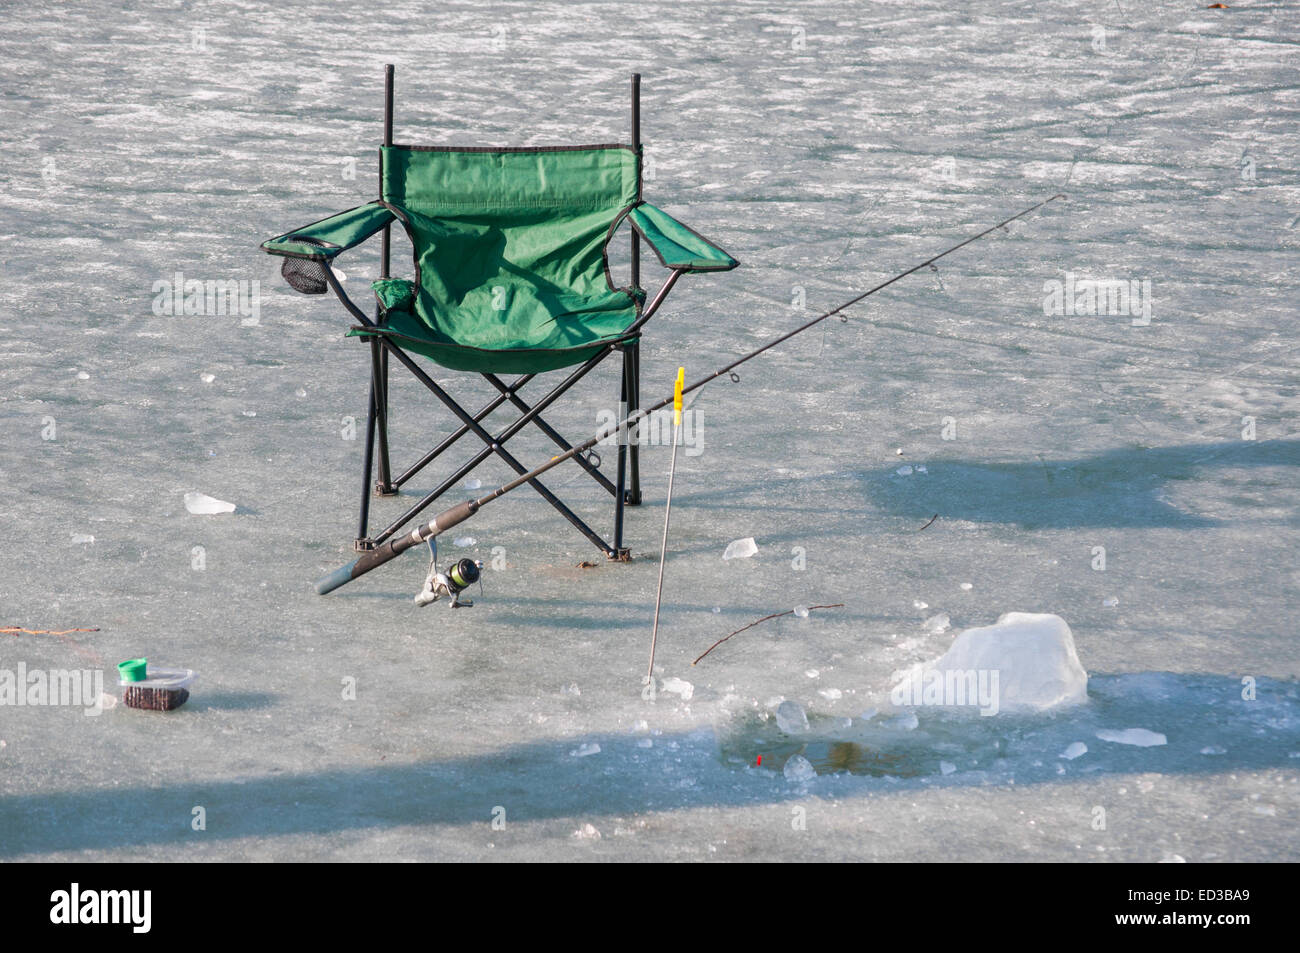 fishing chair setup tennis court umpire chairs hole stock photos images picture of a fisher prepared for catching fish under ice sheet image